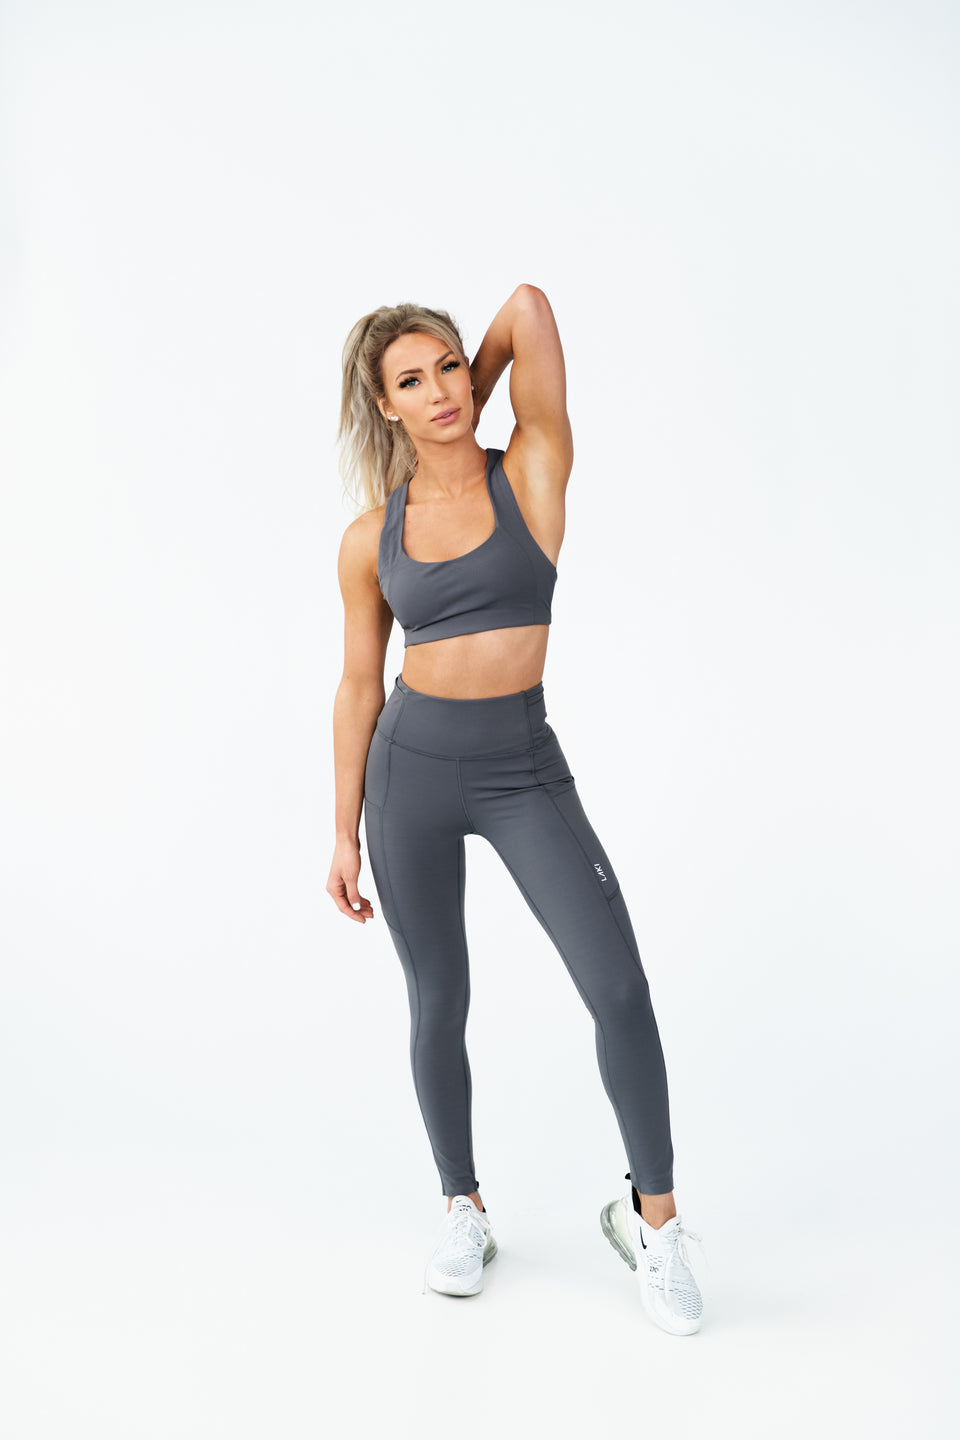 ARK LEGGING - ASH